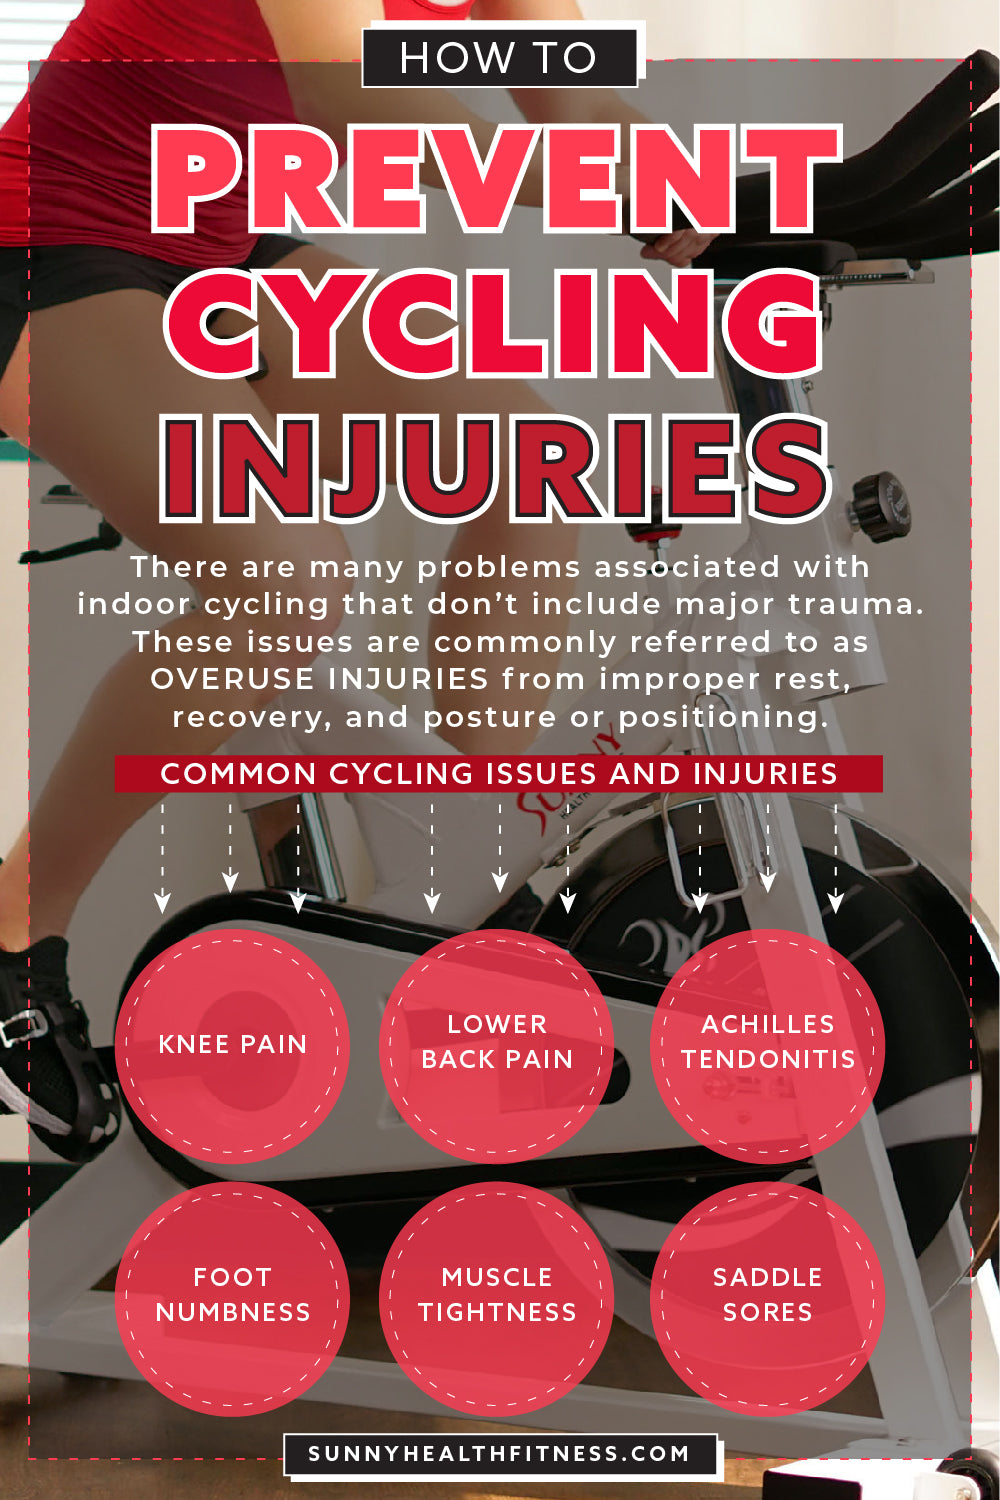 Prevent Cycling Injuries Infographic